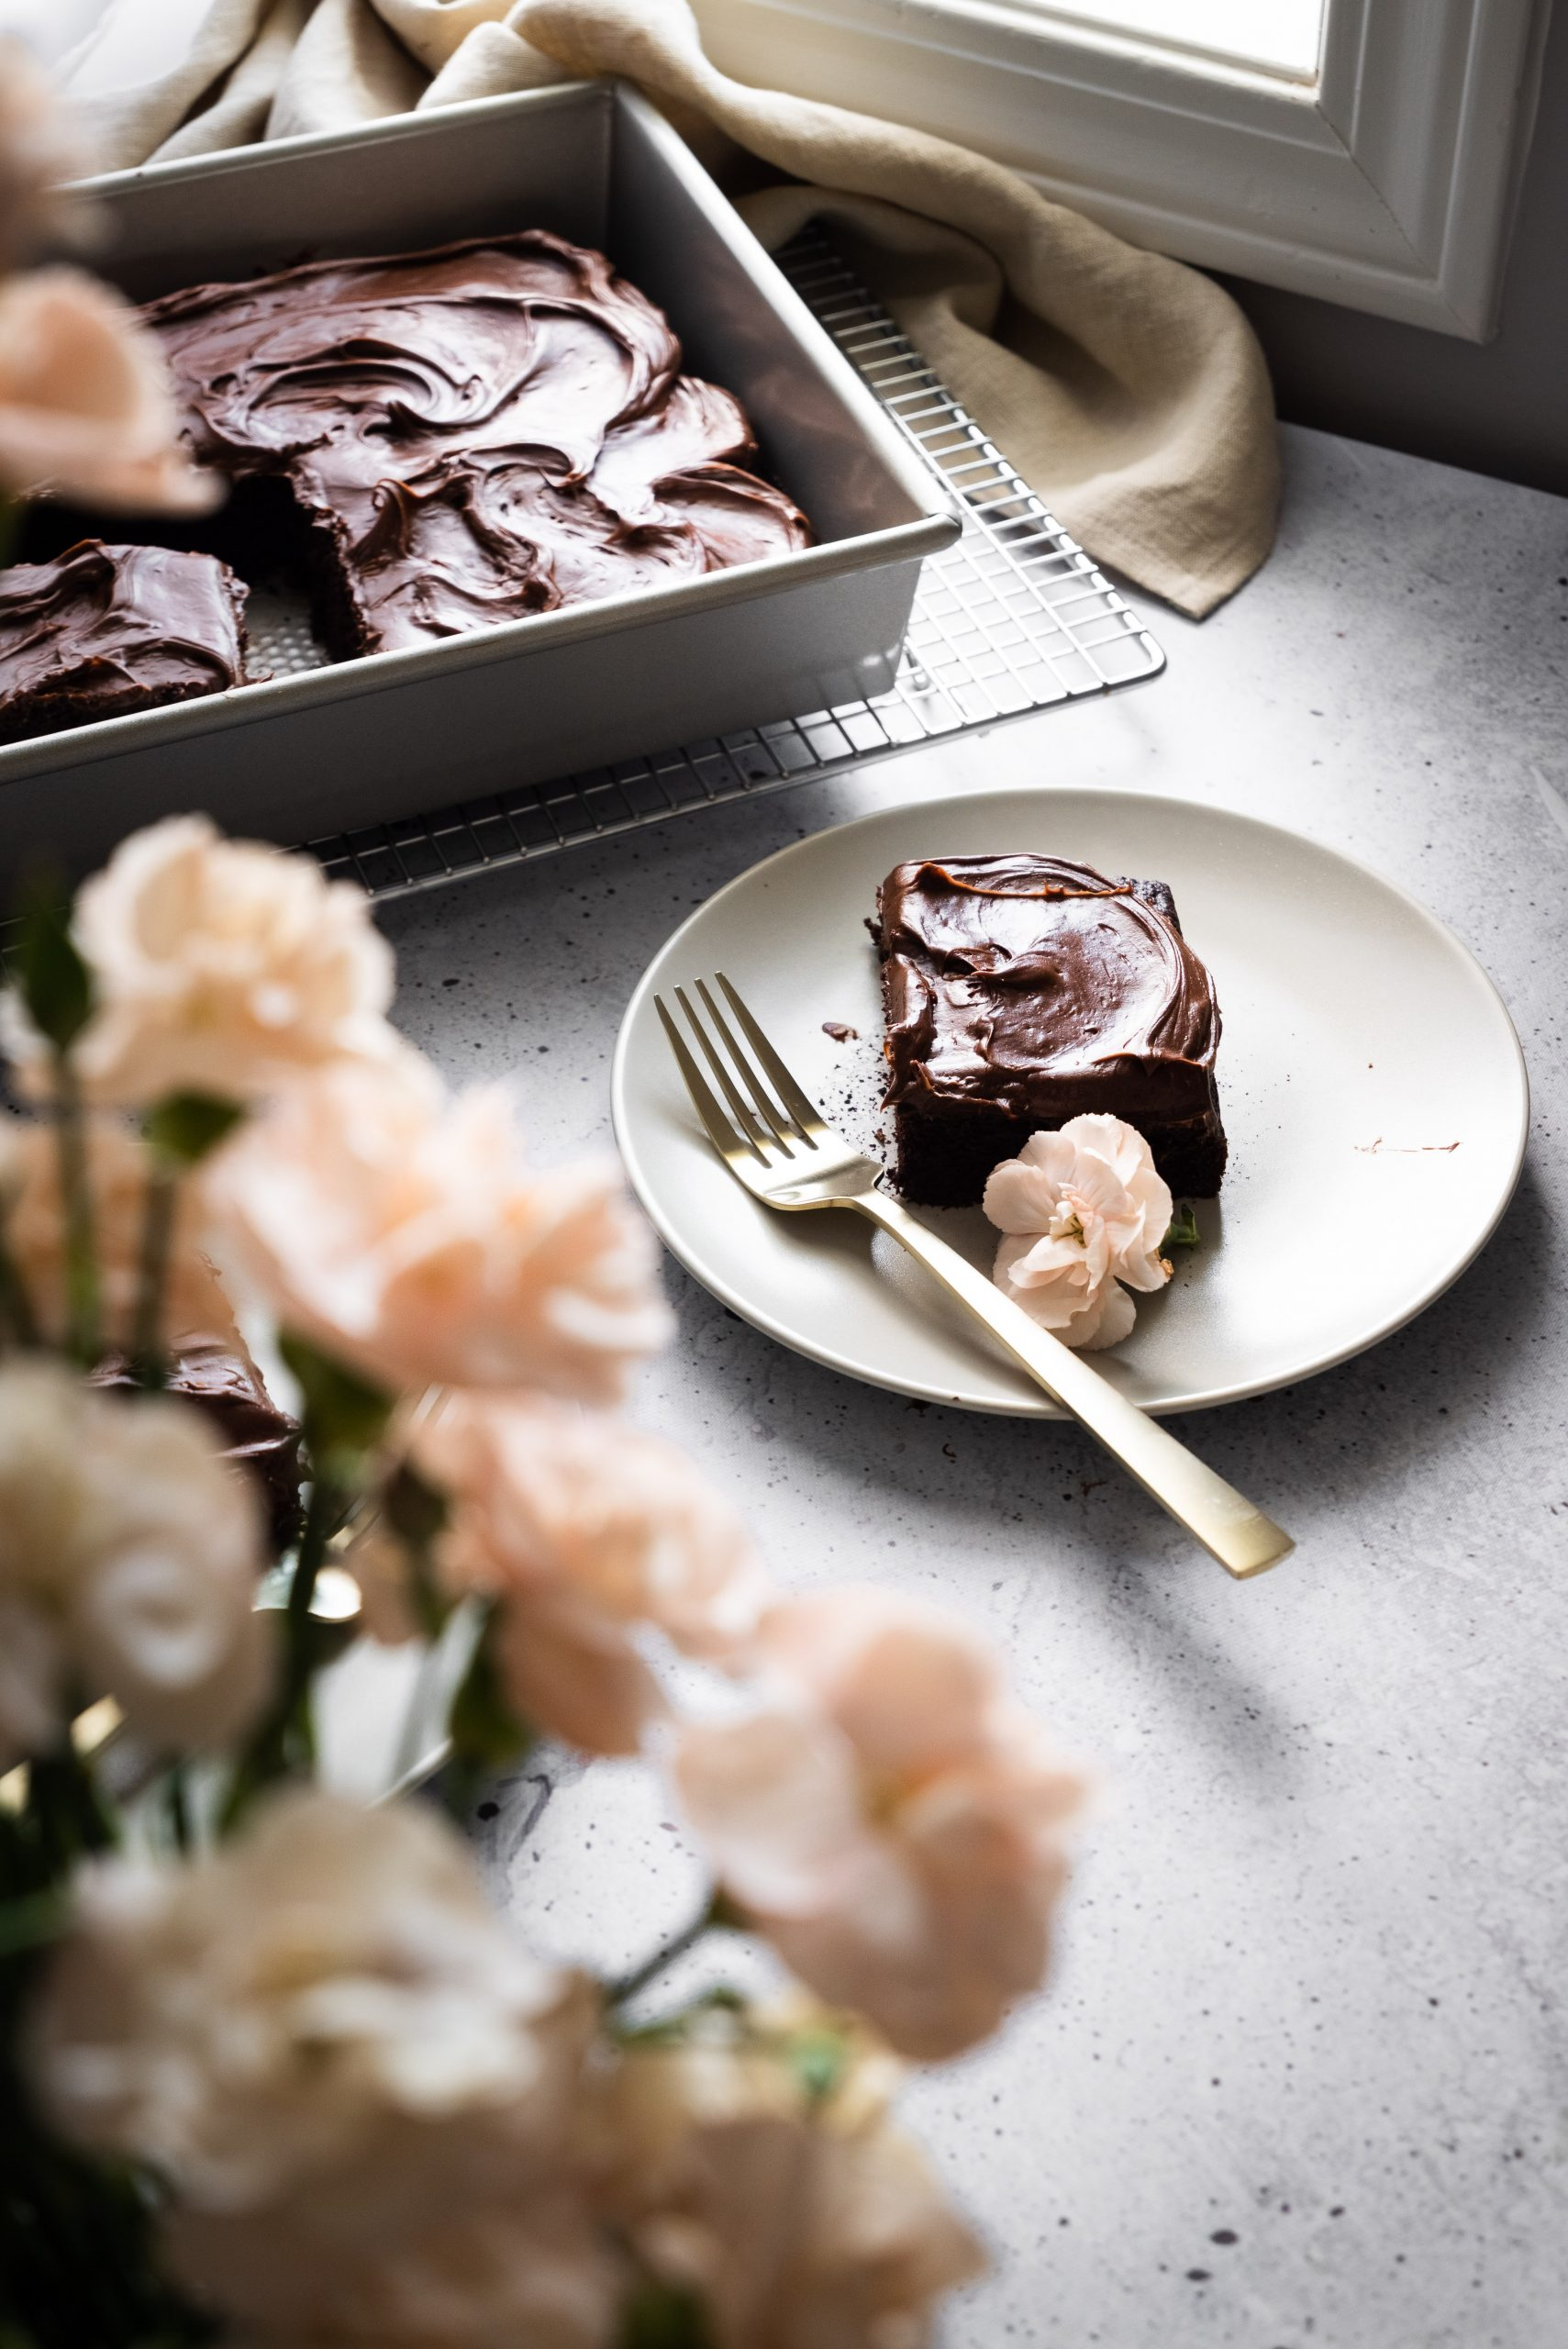 A side view of a slice of chocolate zucchini cake on a white plate with a gold fork and beige flowers in the foreground.